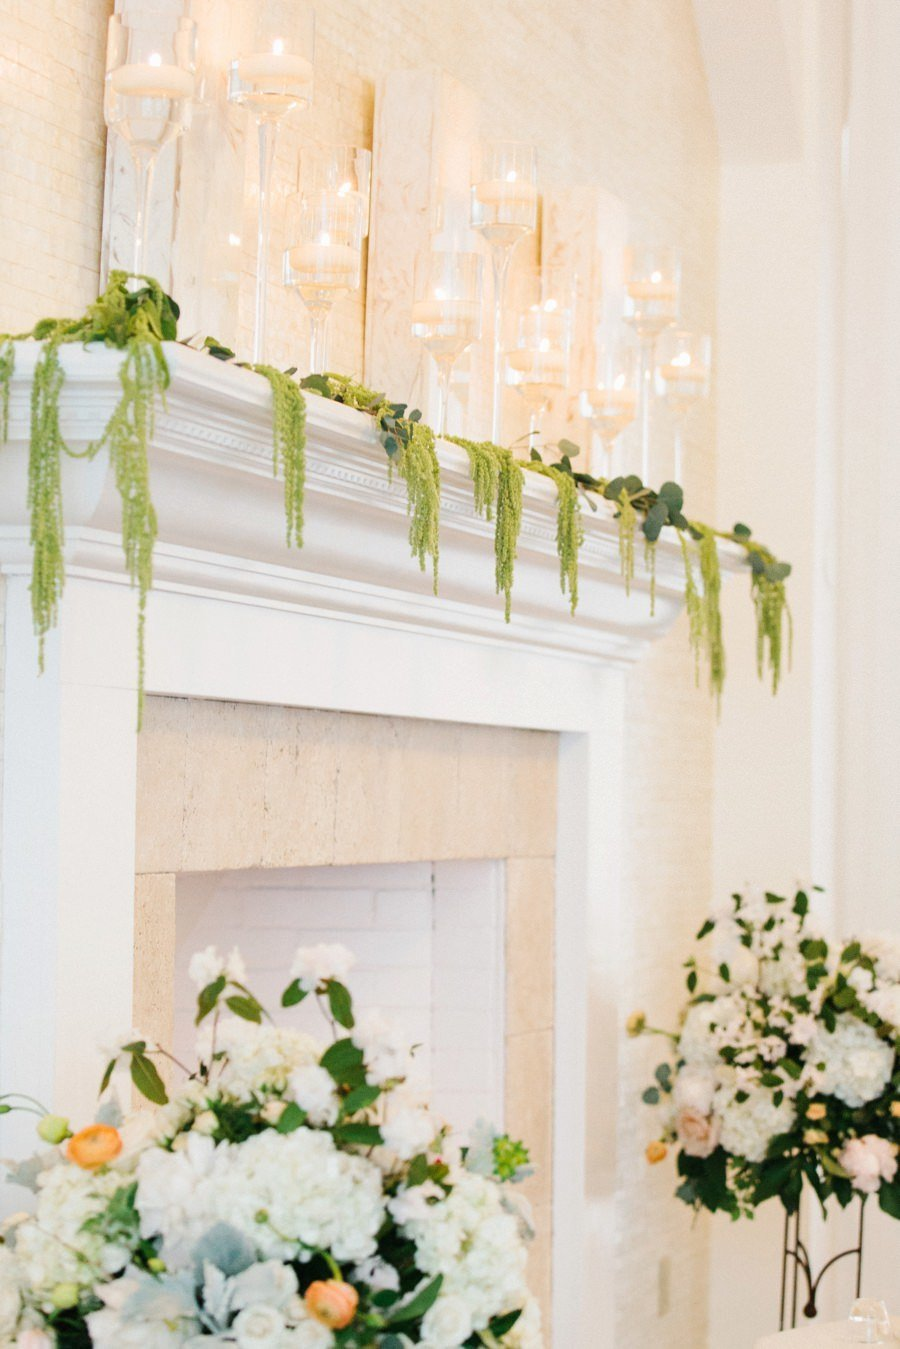 Indoor wedding ceremony fireplace decor for wedding at Belle Mer in Newport, RI